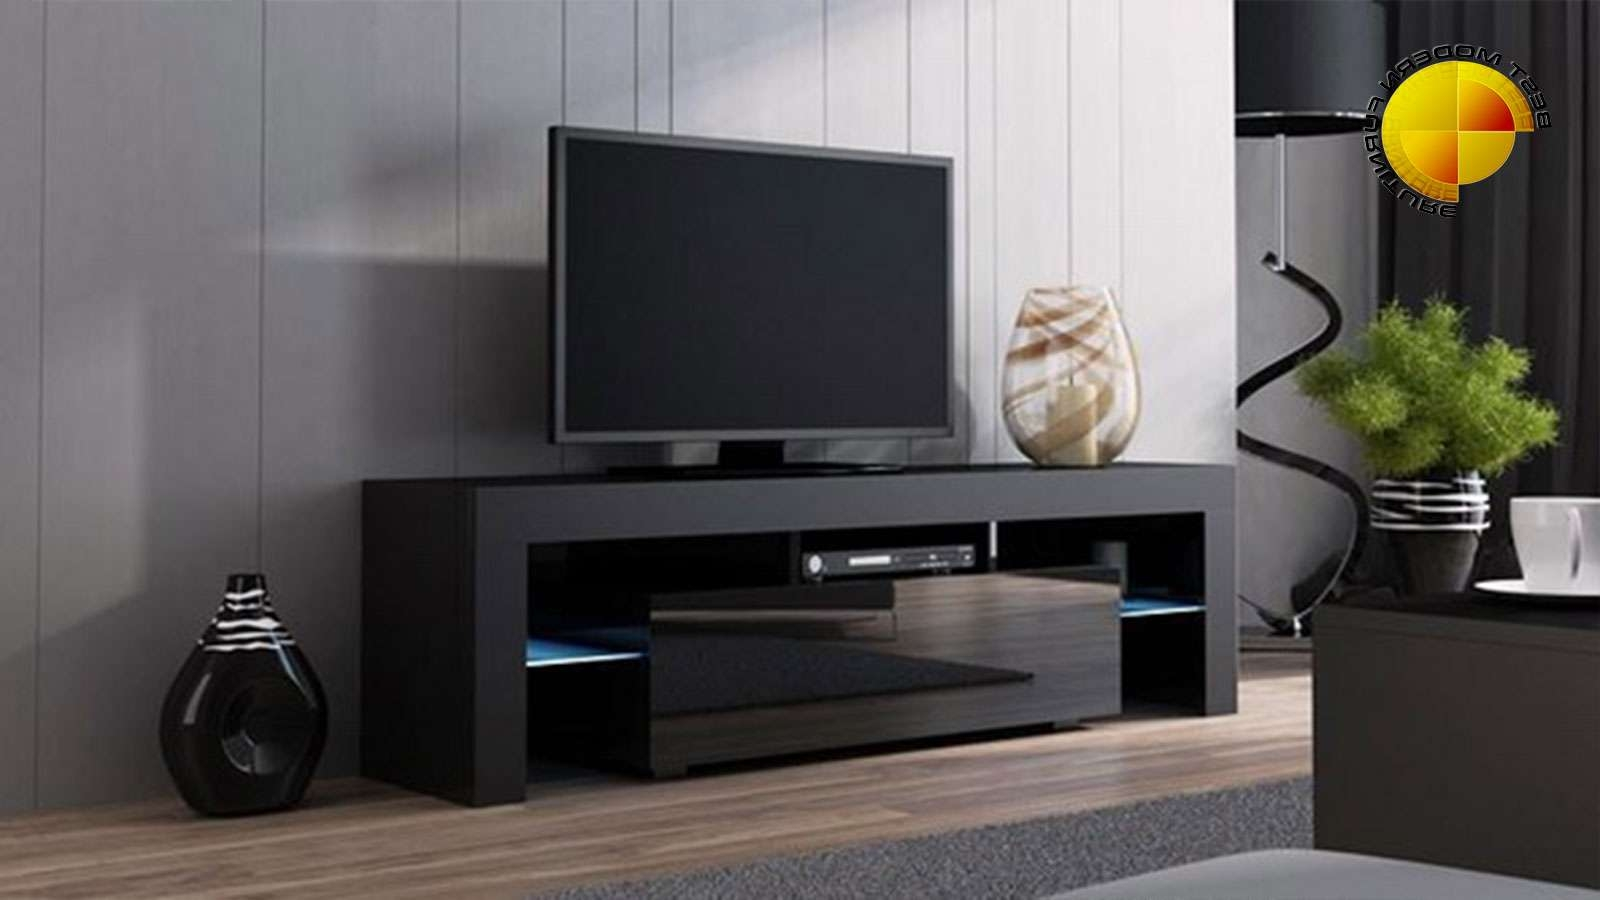 Modern Tv Stand 160cm High Gloss Cabinet Rgb Led Lights Black Unit With Black Modern Tv Stands (View 9 of 15)